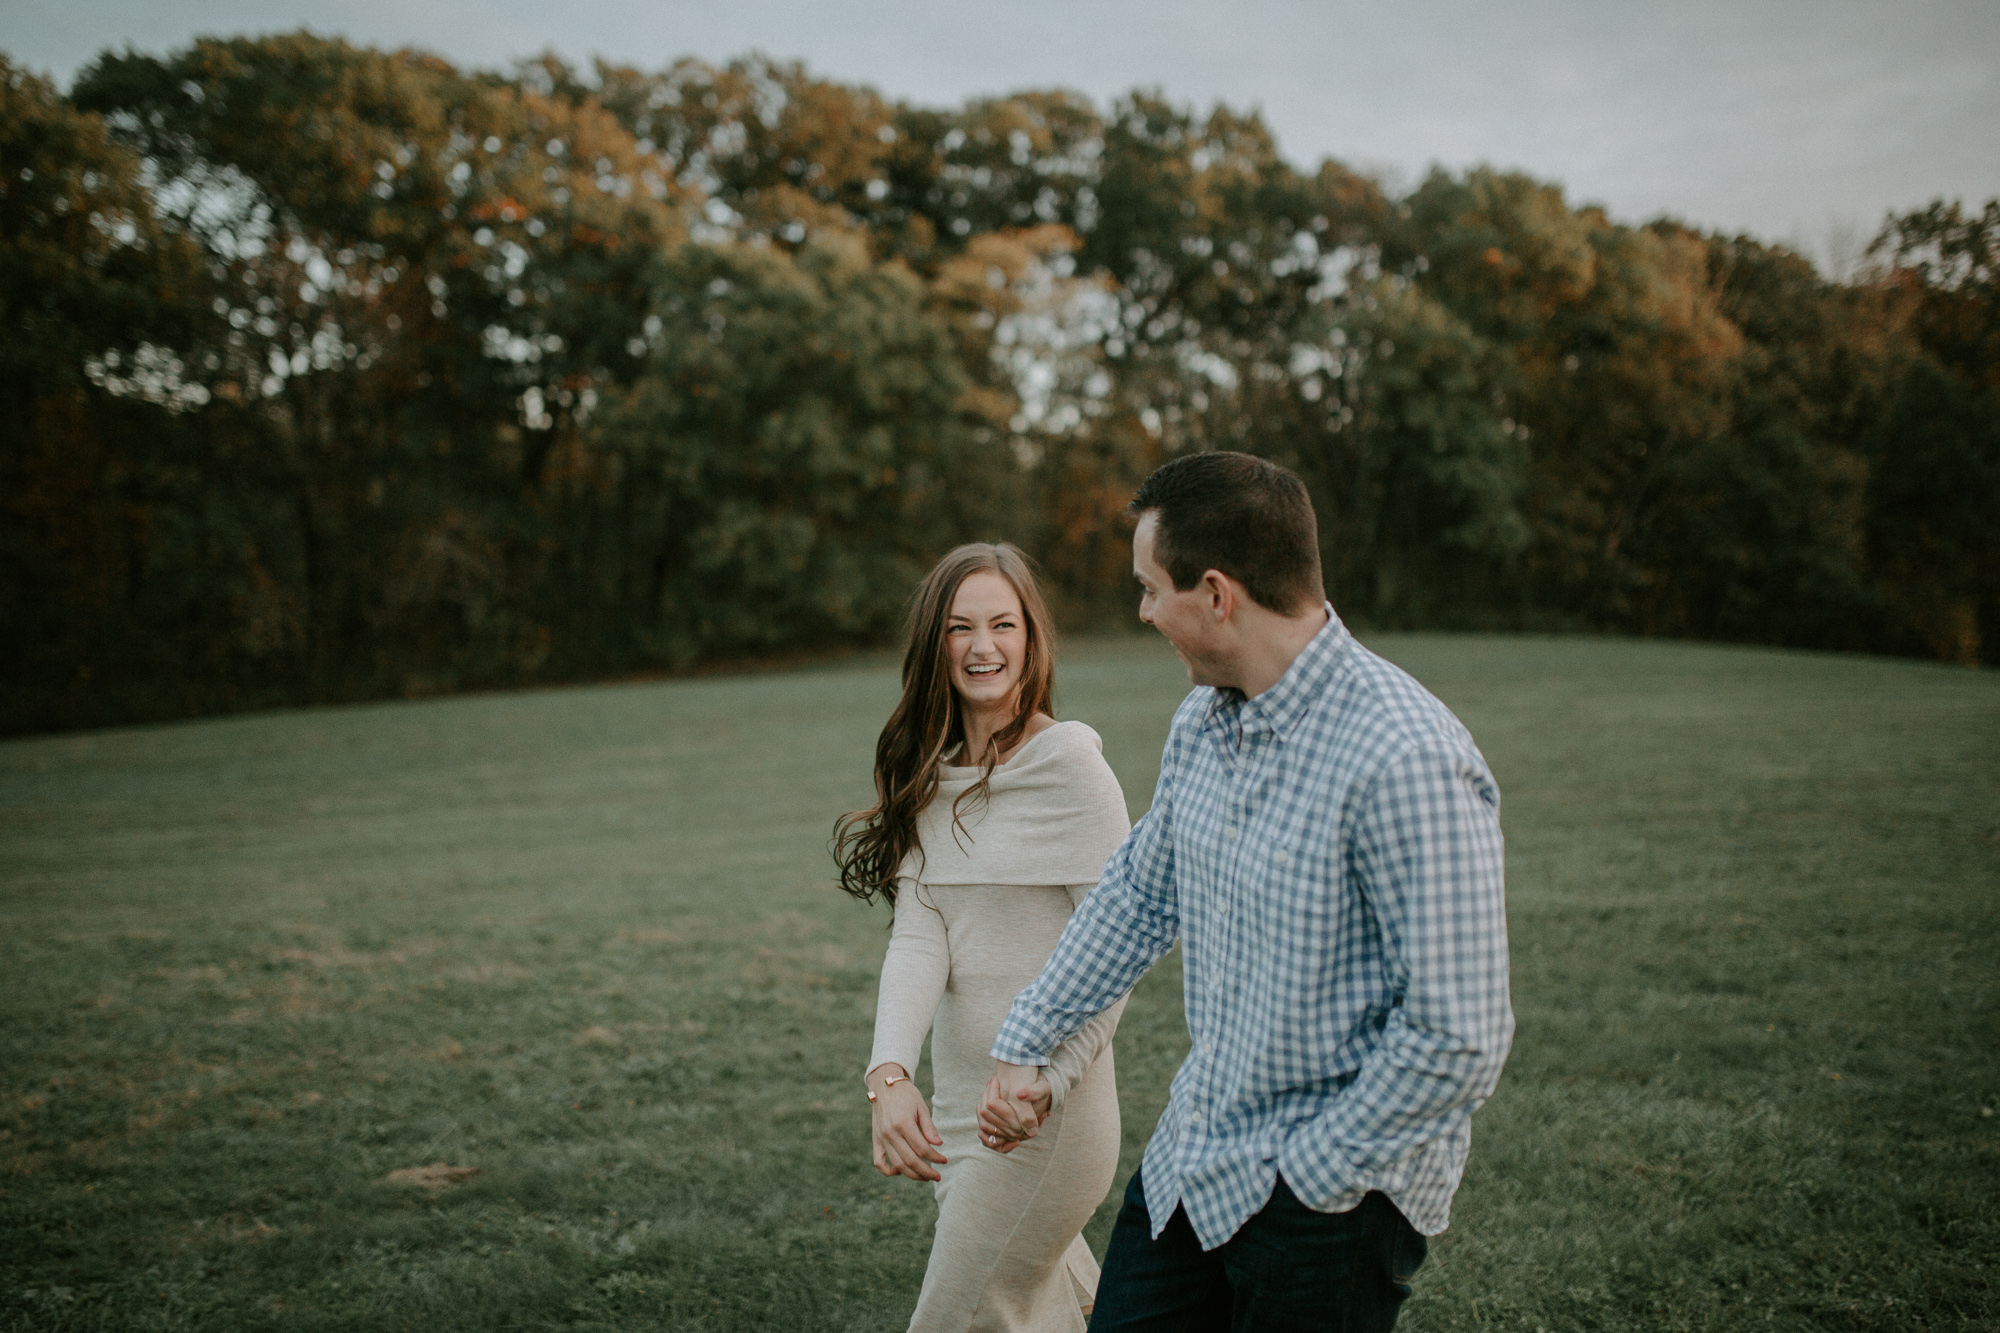 champaign_il_engagement_photography-0170.jpg